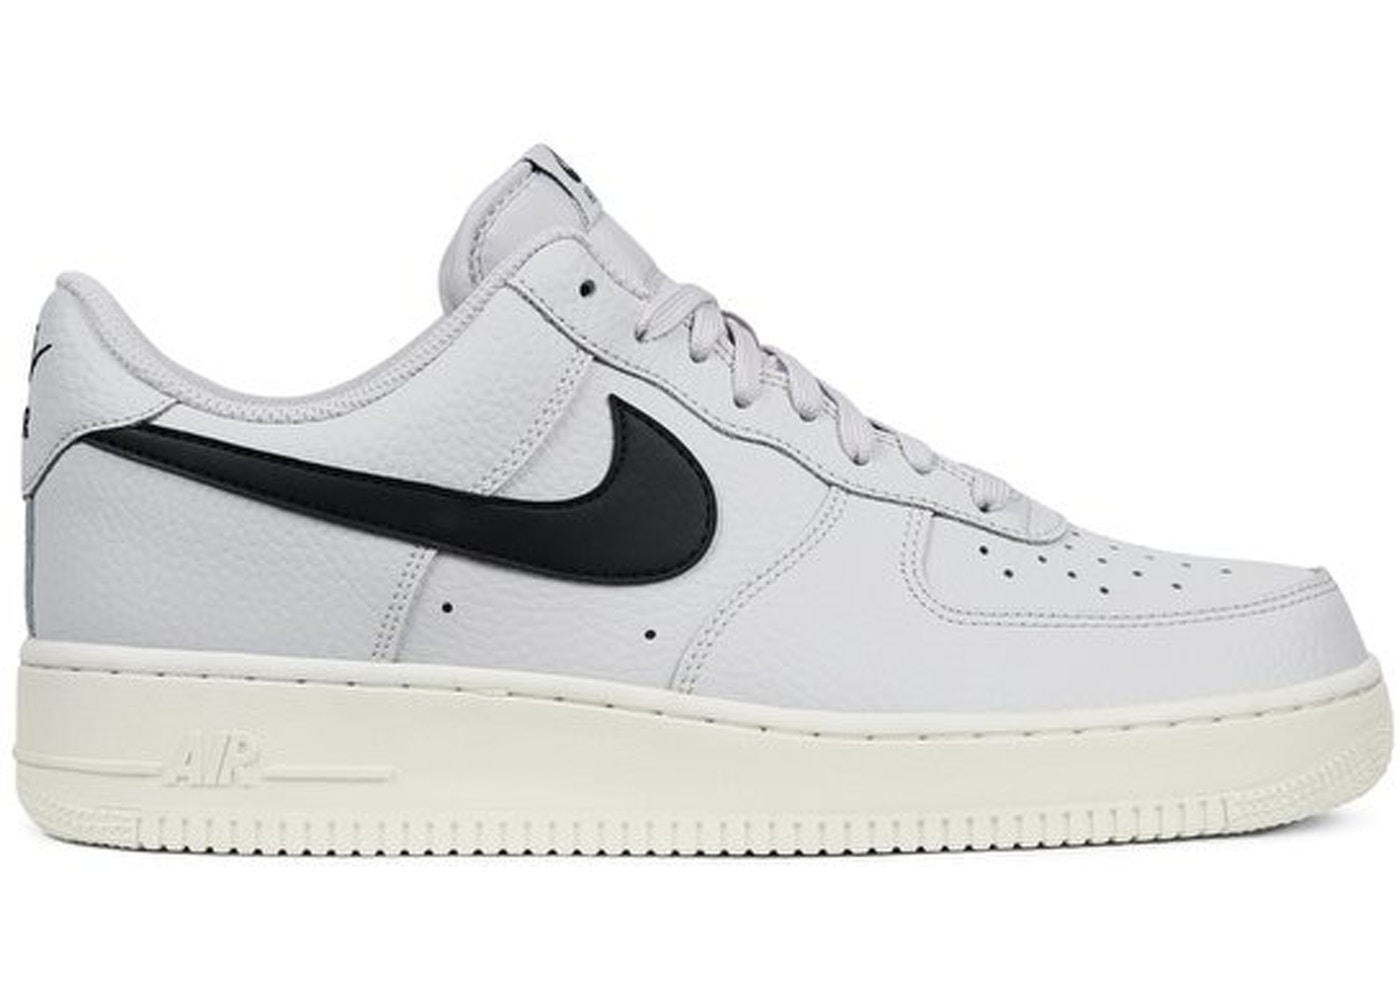 timeless design 9dbdf 50020 Nike Air Force Shoes - New Highest Bids